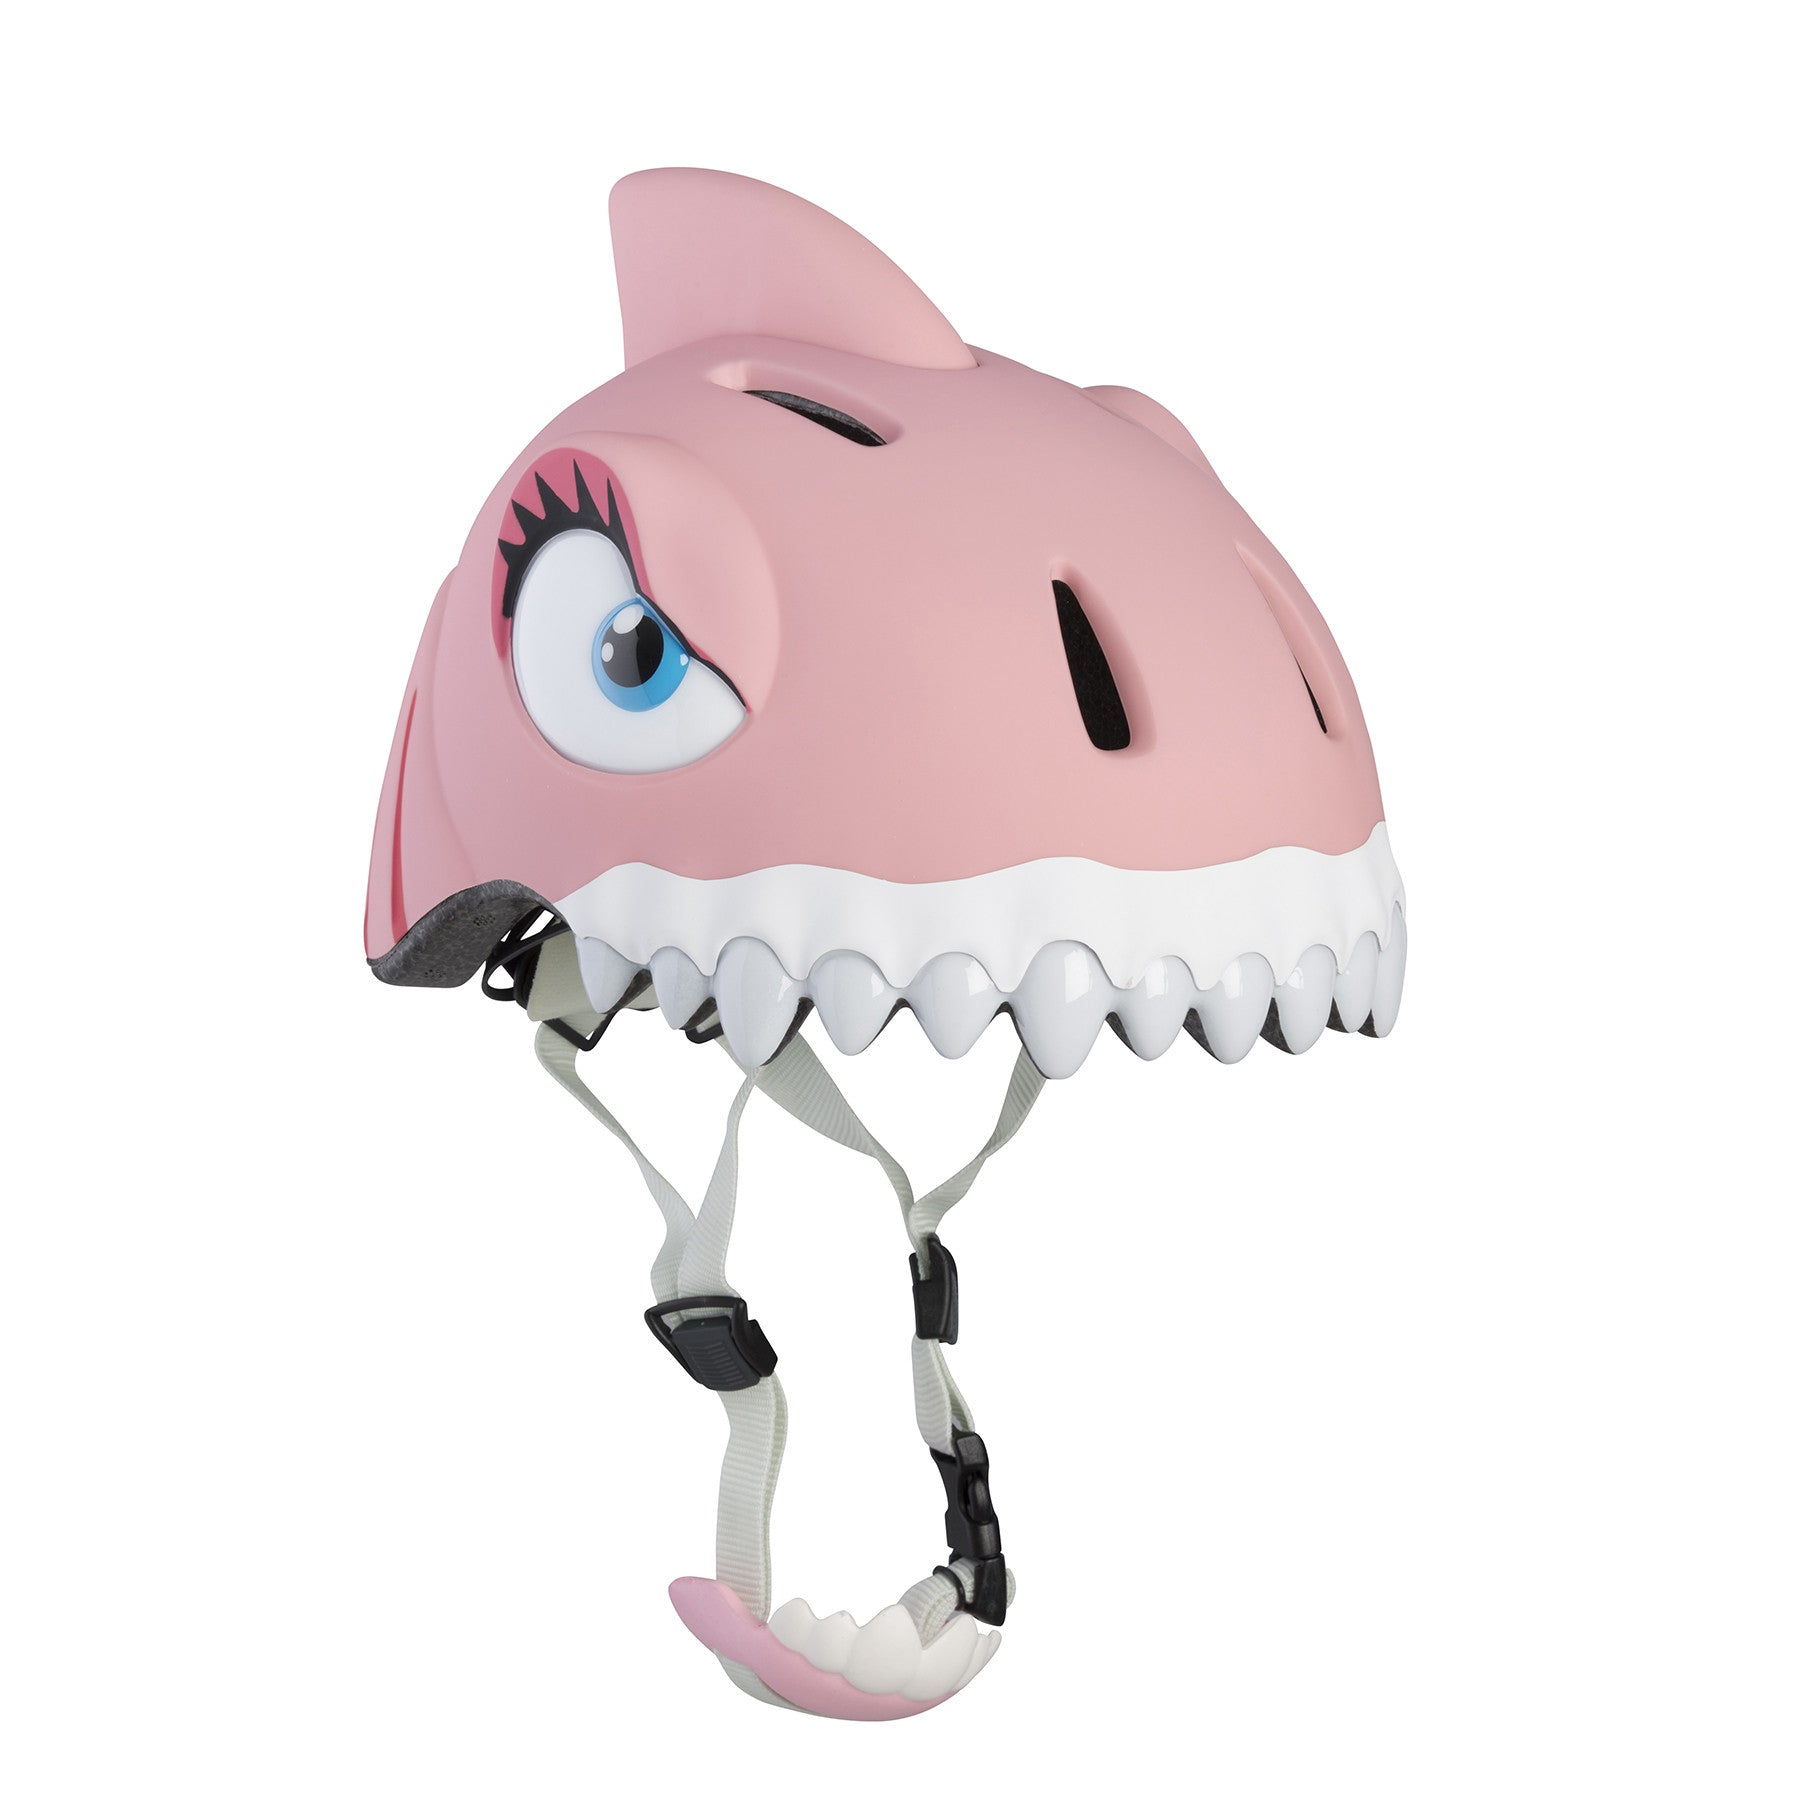 Pink Shark Bike, Scooter or Skateboarding Helmet by Crazy Safety - Little Citizens Boutique  - 1